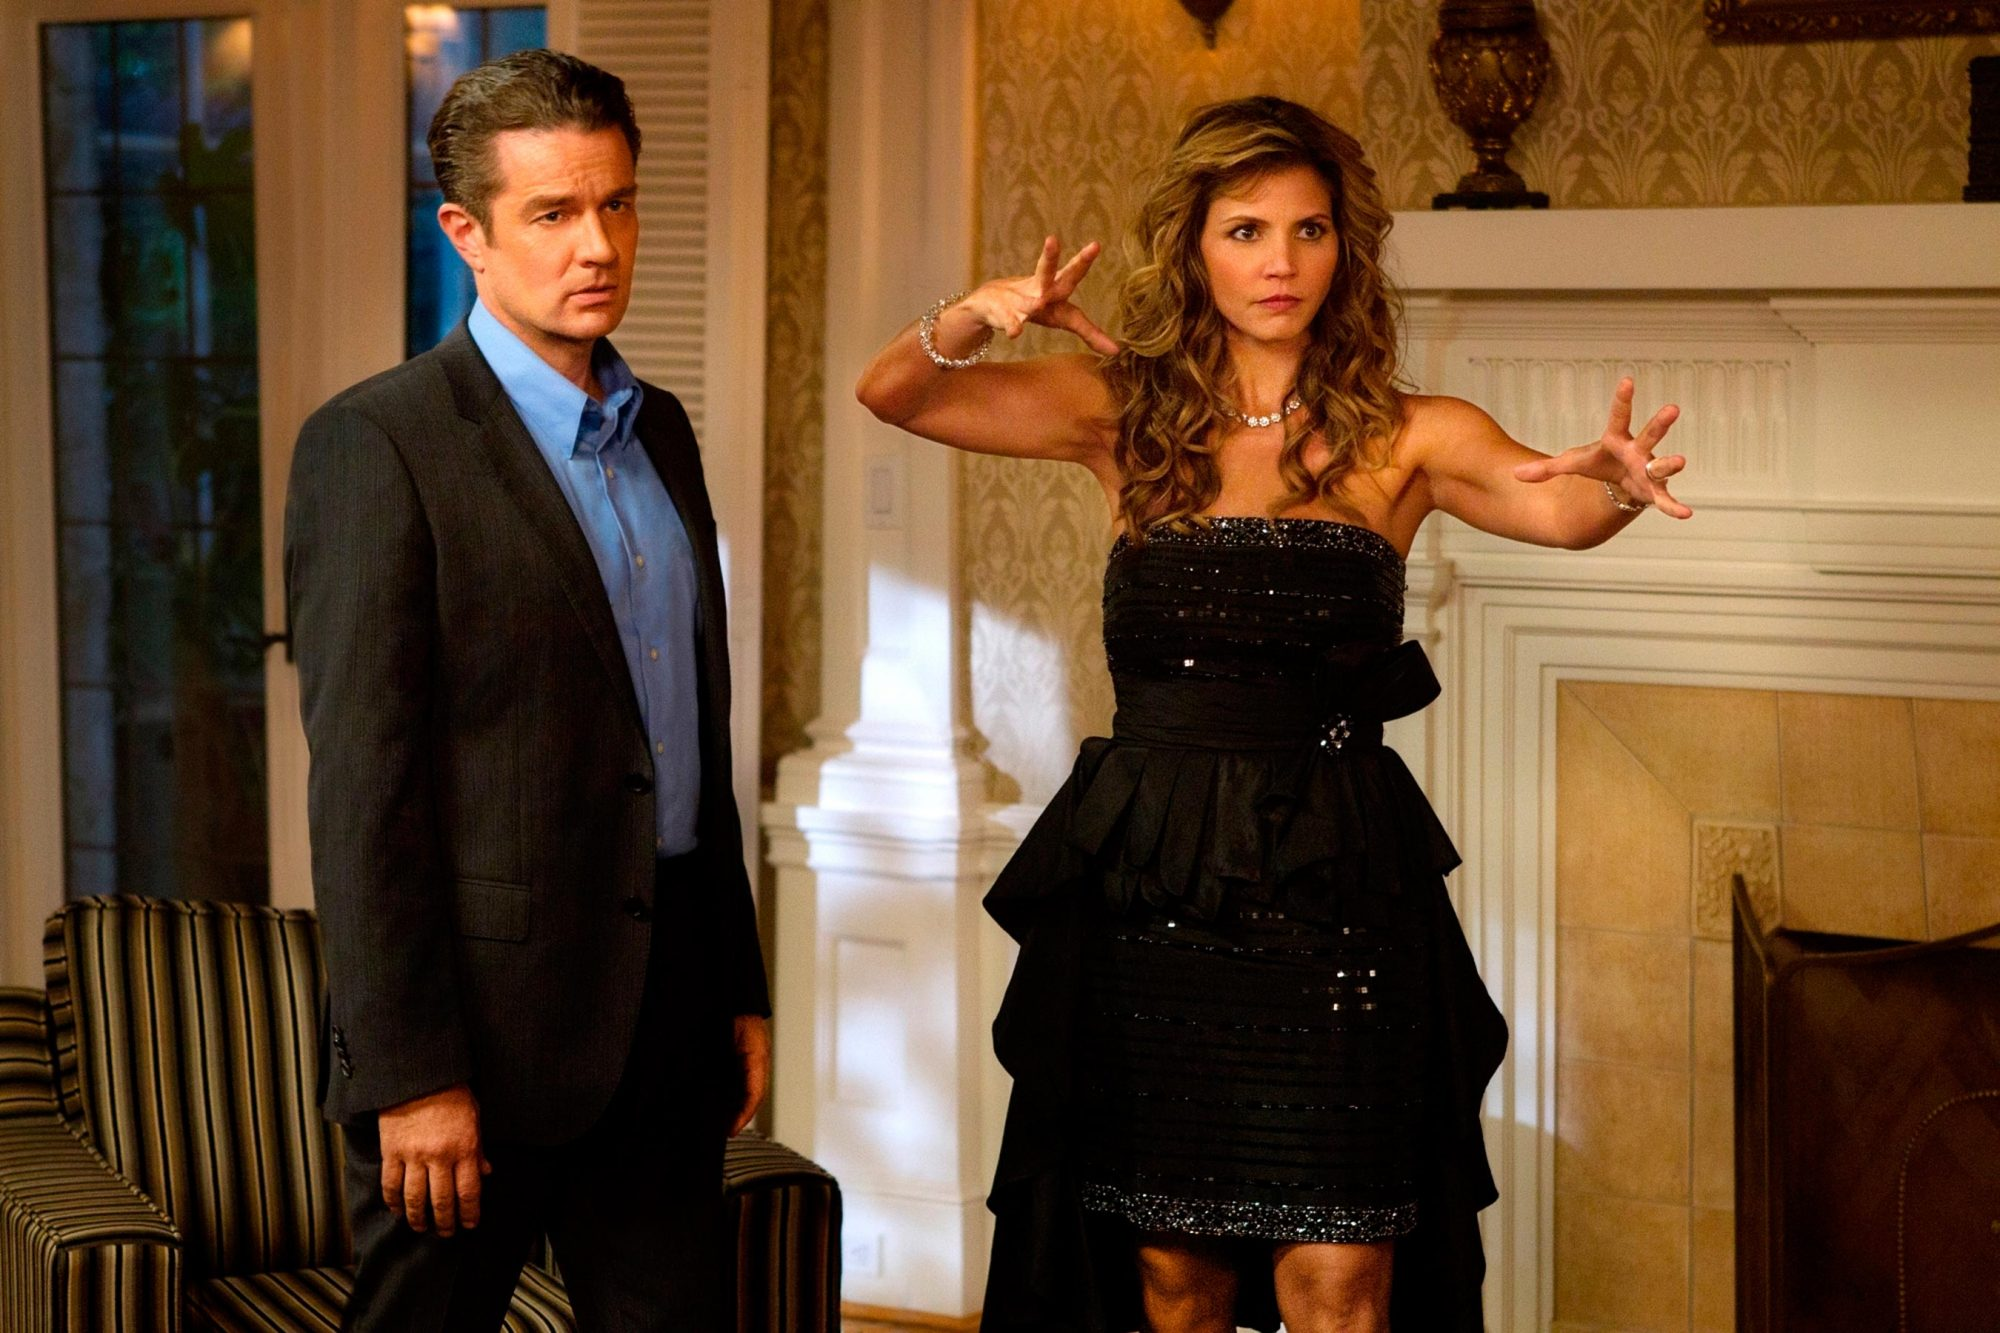 7-8. James Marsters and Charisma Carpenter as Don and Maggie Stark